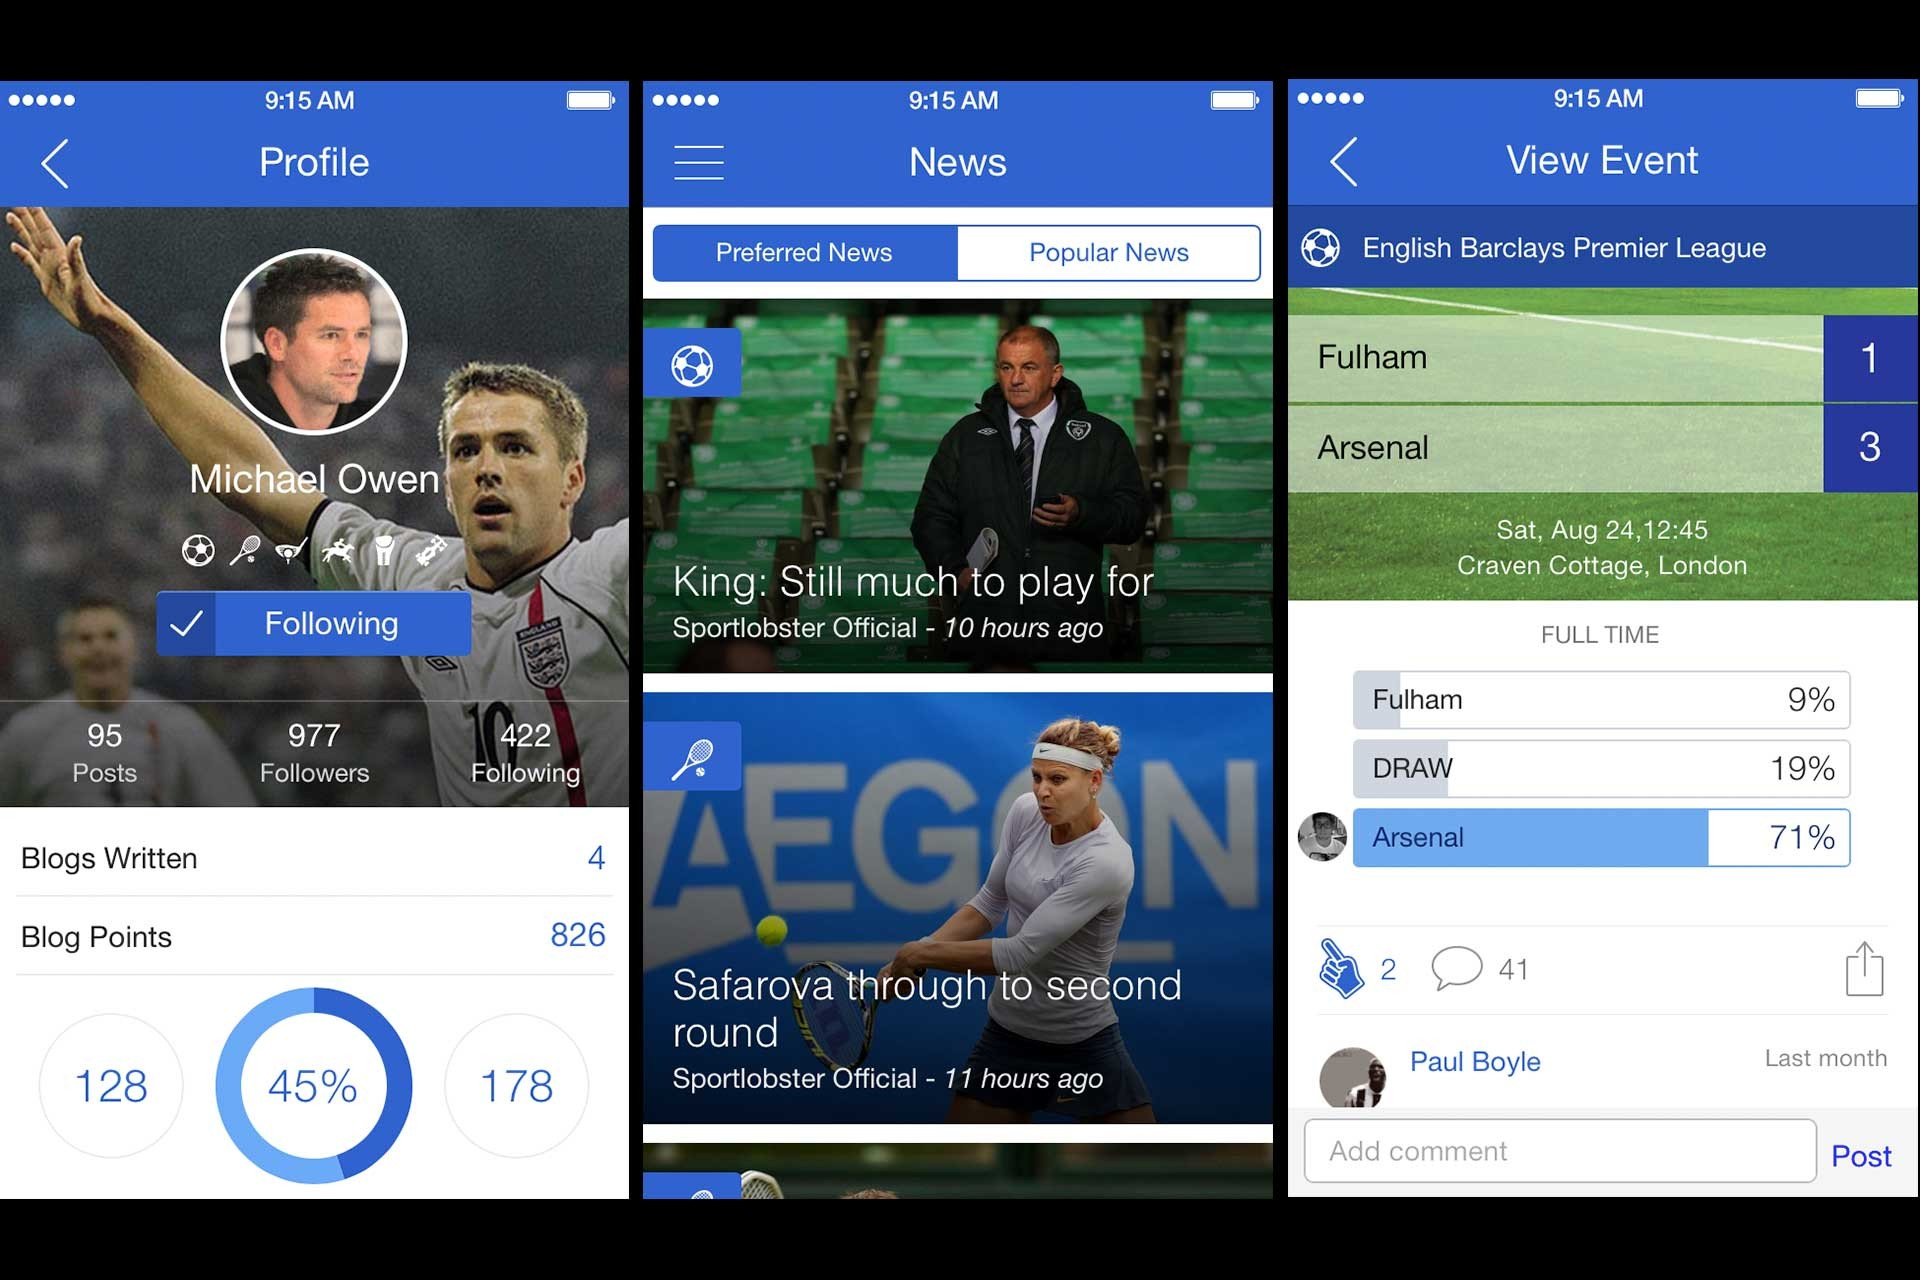 Sportlobster-slideshow-6